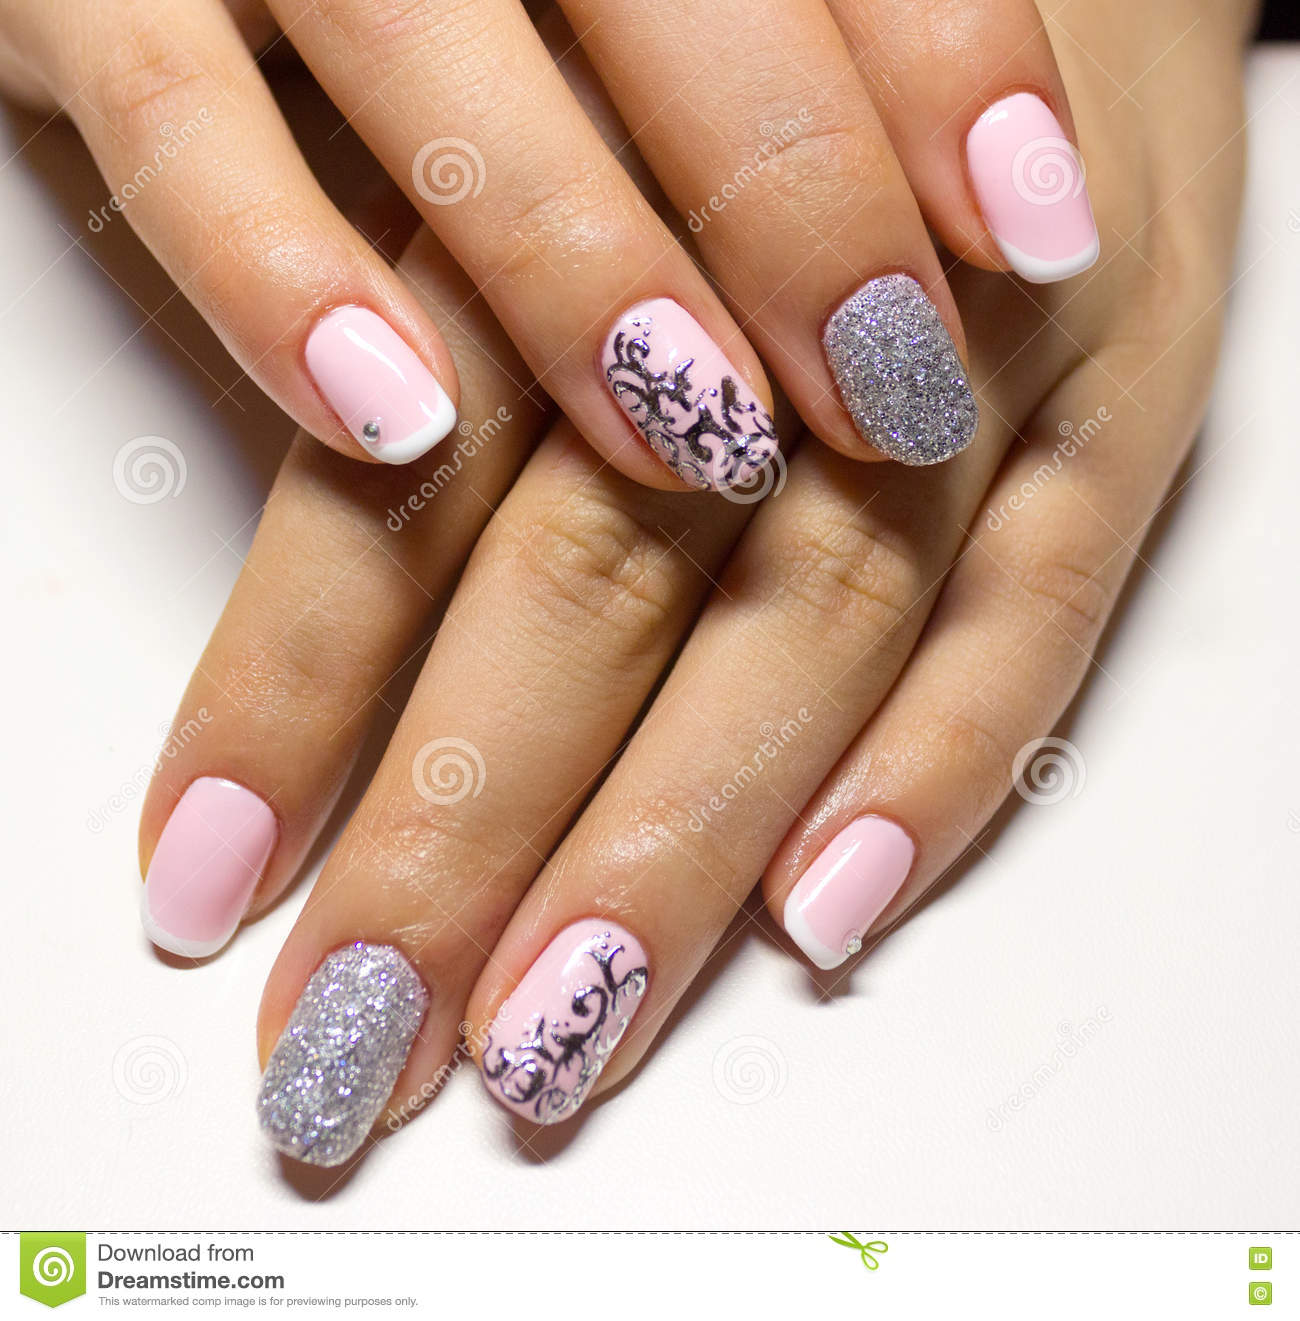 15 Tips for Healthy and Beautiful Nails | Healthy Dieting Tips